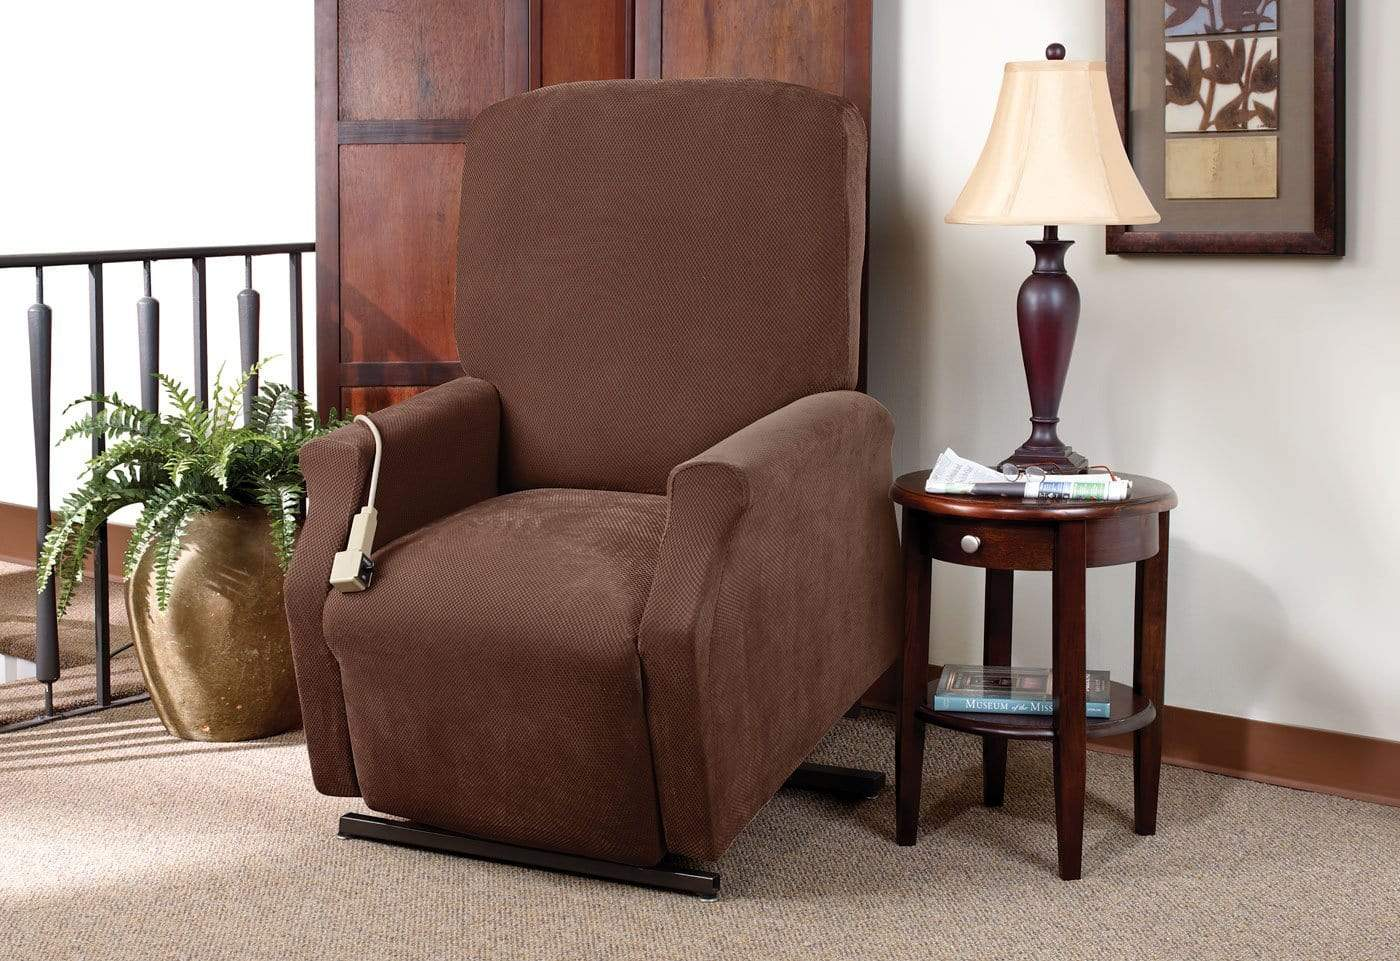 Stretch Piqué One Piece Medium Lift Recliner Slipcover - Final Sale - Medium Lift Recliner / Chocolate